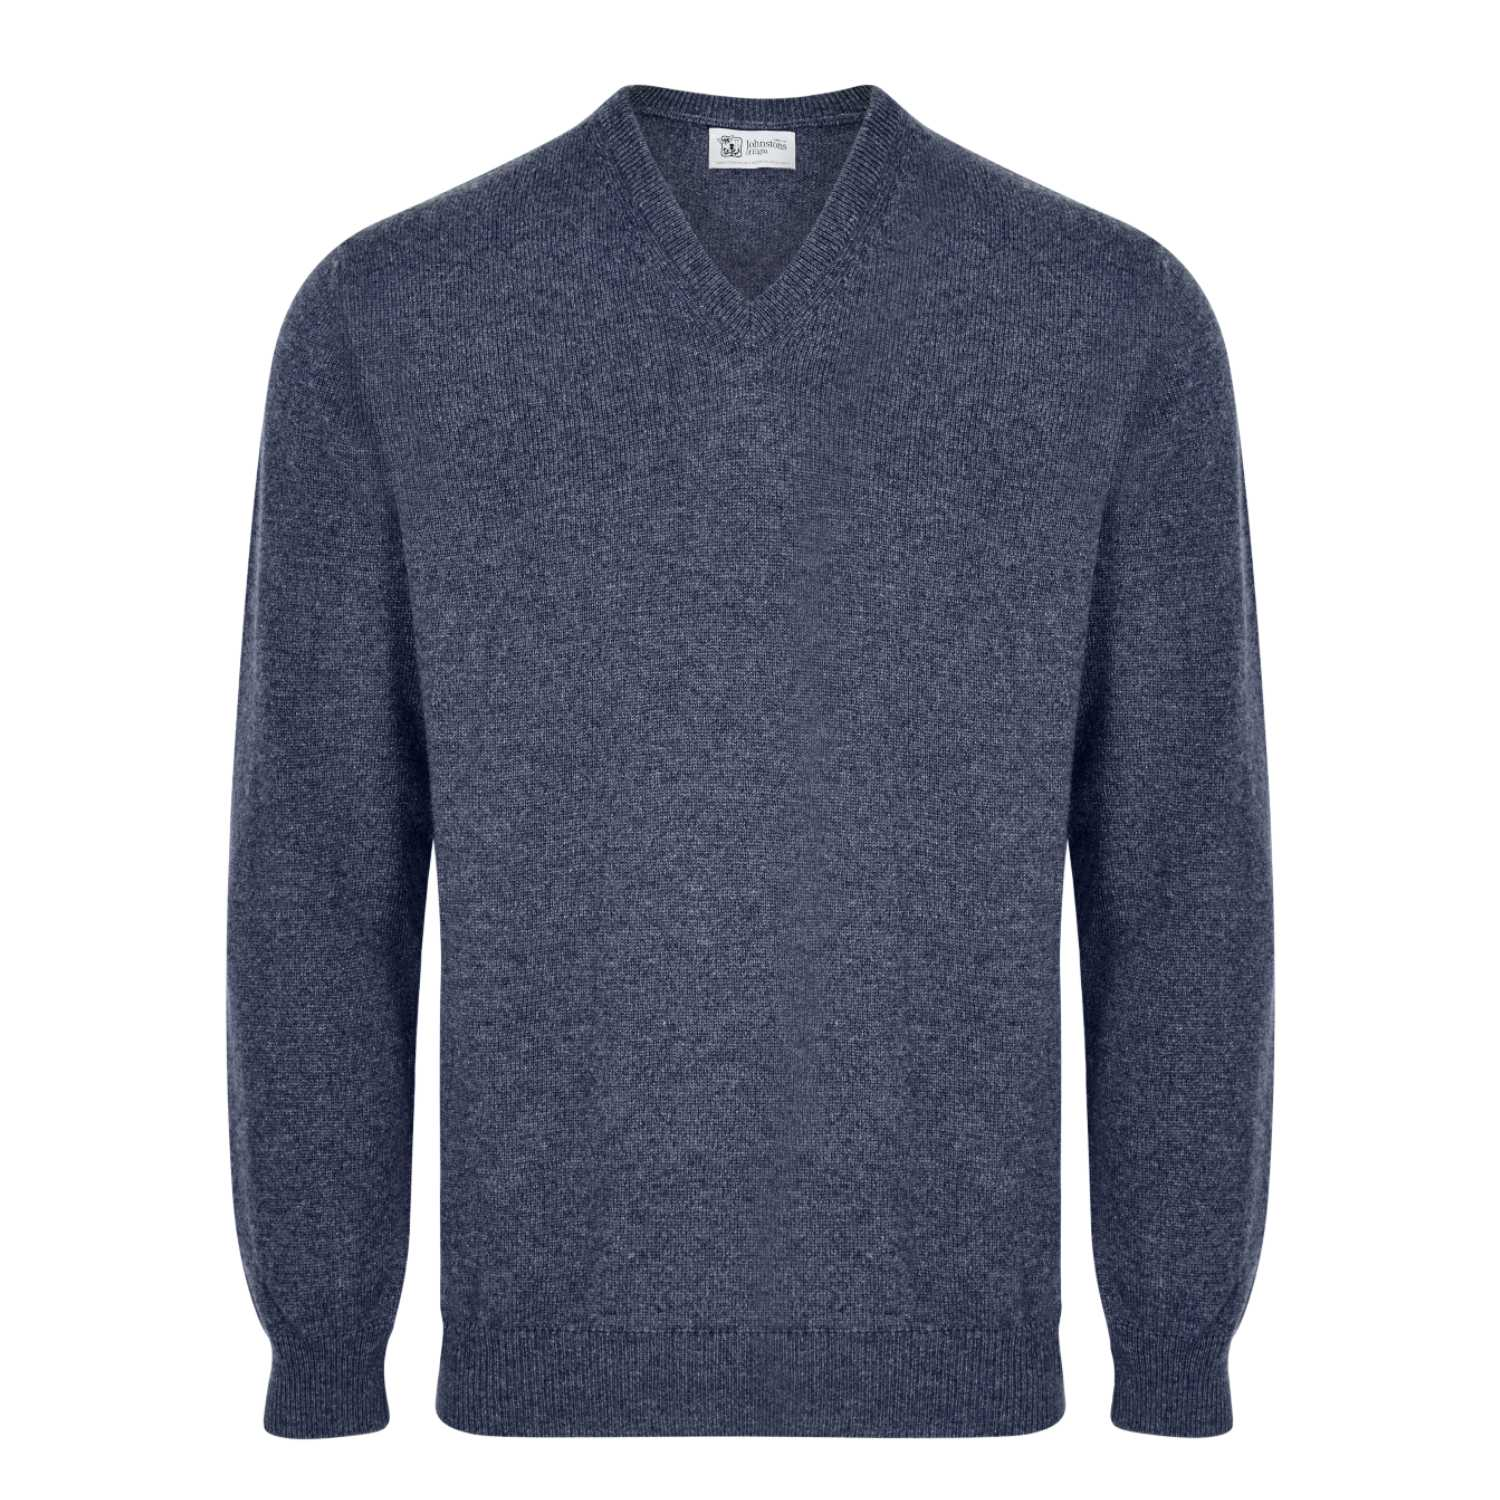 Johnsons Cashmere | Mens Navy Blue Cashmere Sweater | 3 ply Cashmere | buy at The Cashmere Choice | London